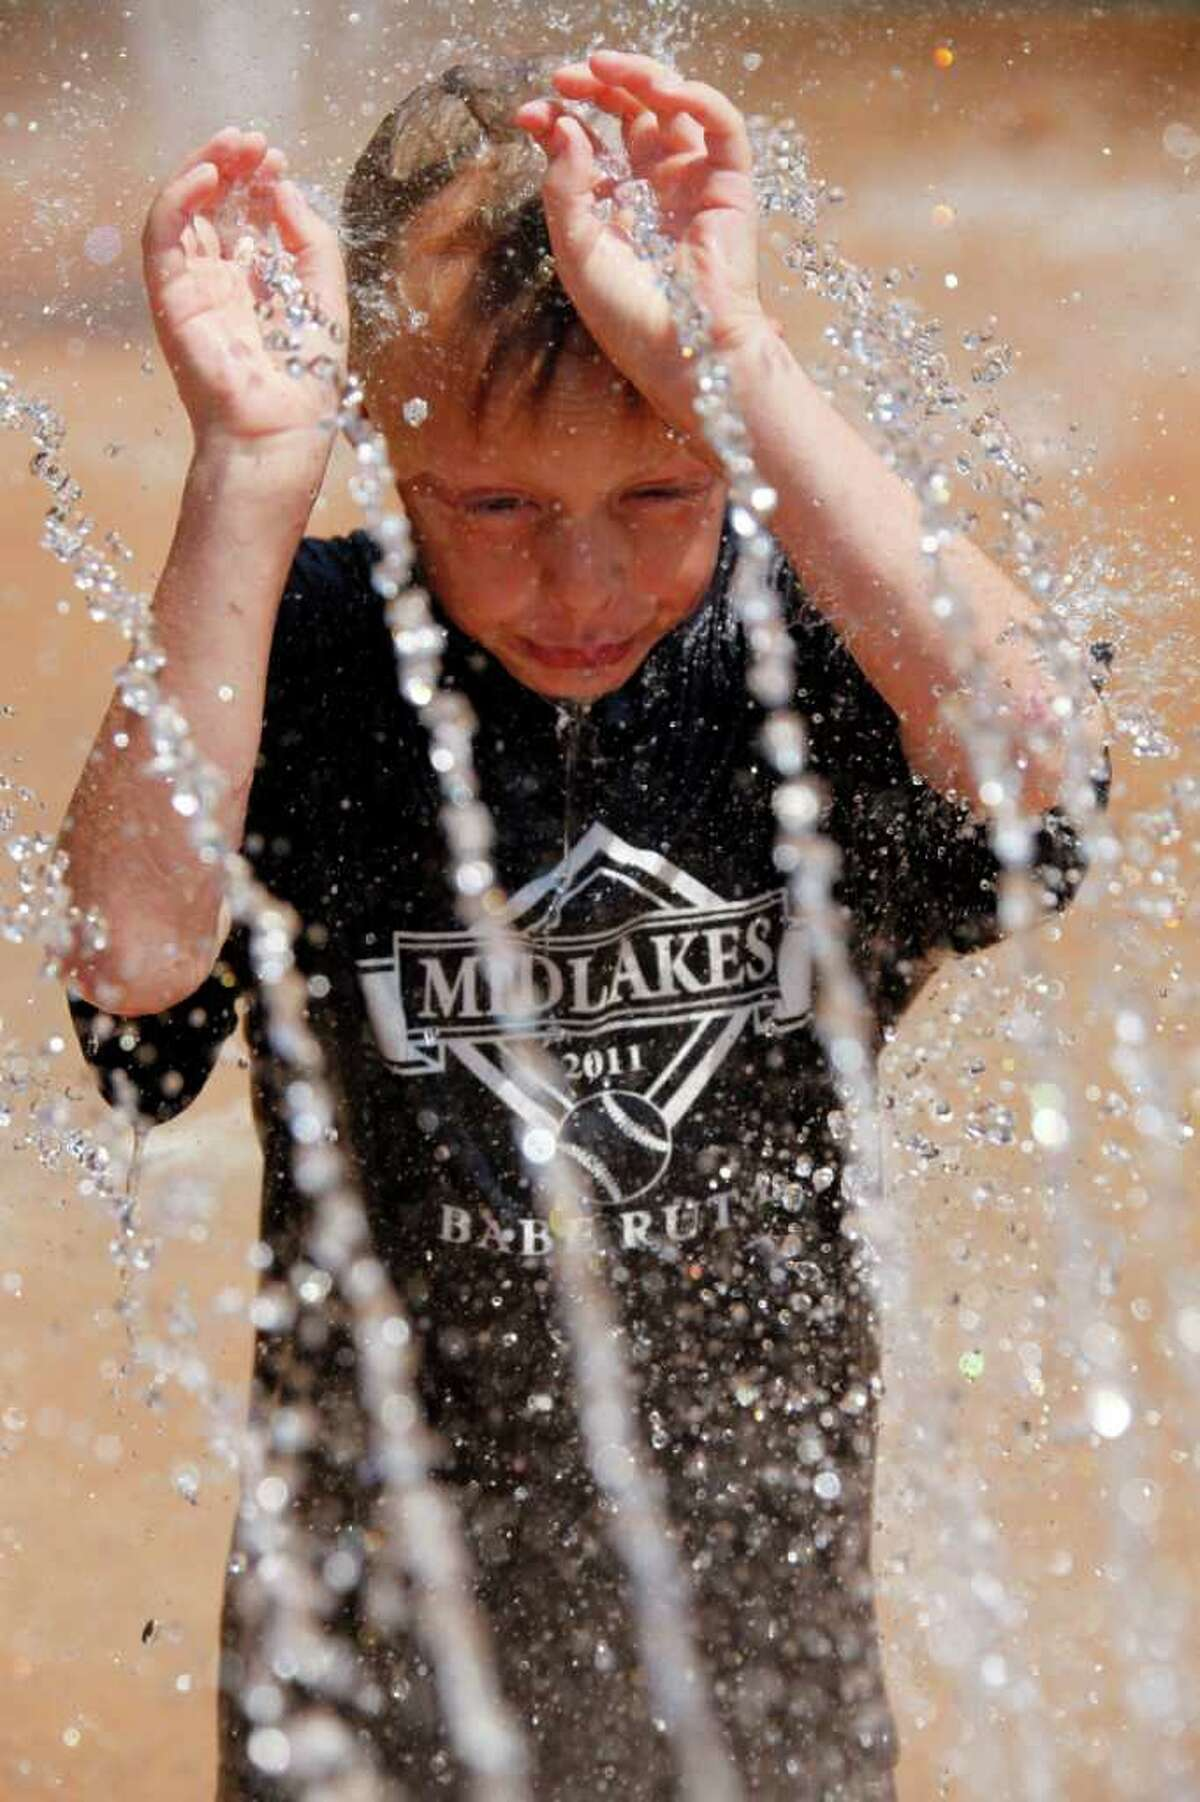 Mason Dziekan cools off playing in a water fountain during the hot summer weather at a park in Batavia, N.Y., on Monday.